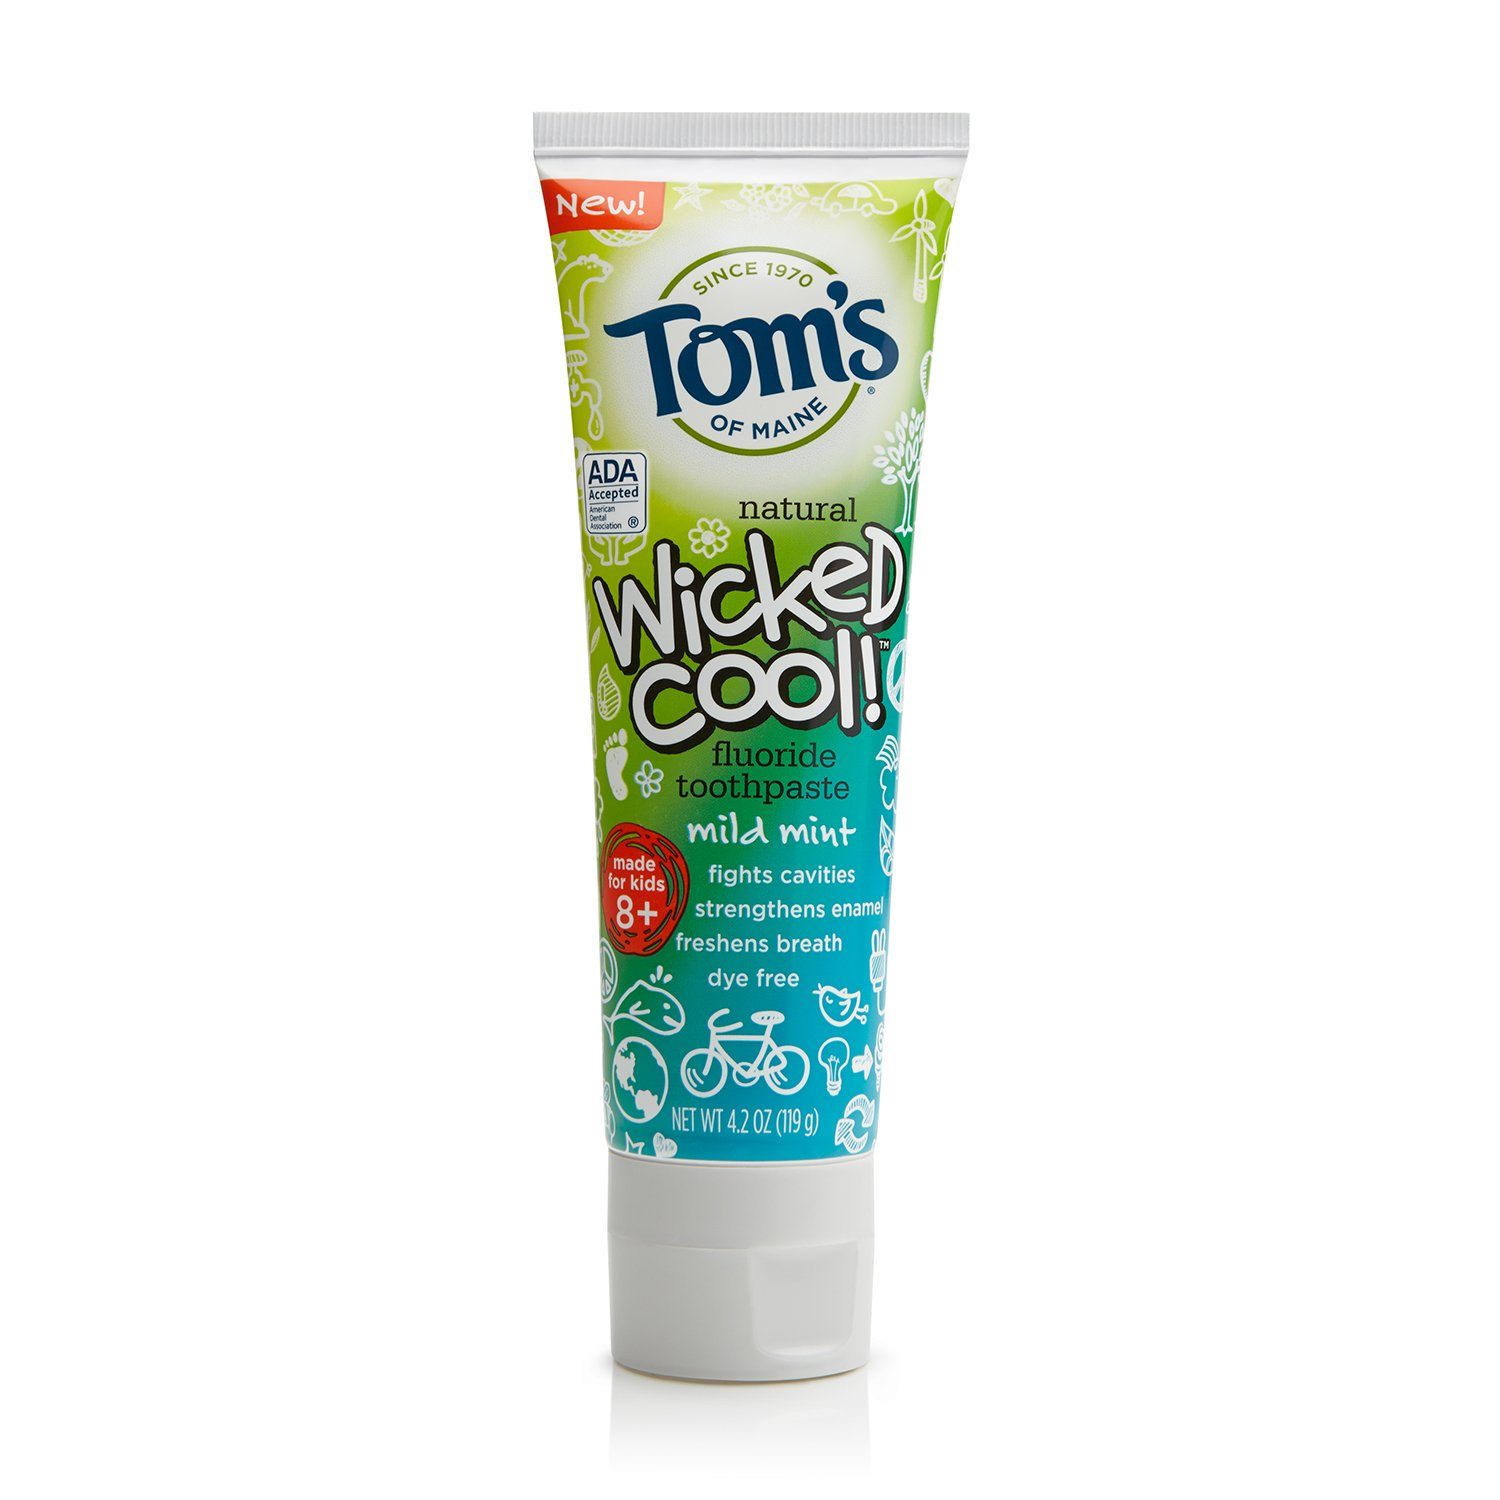 Tom's of Maine Natural Wicked Cool! Fluoride Toothpaste, Mild Mint, 4.2 Ounce, Pack of 24